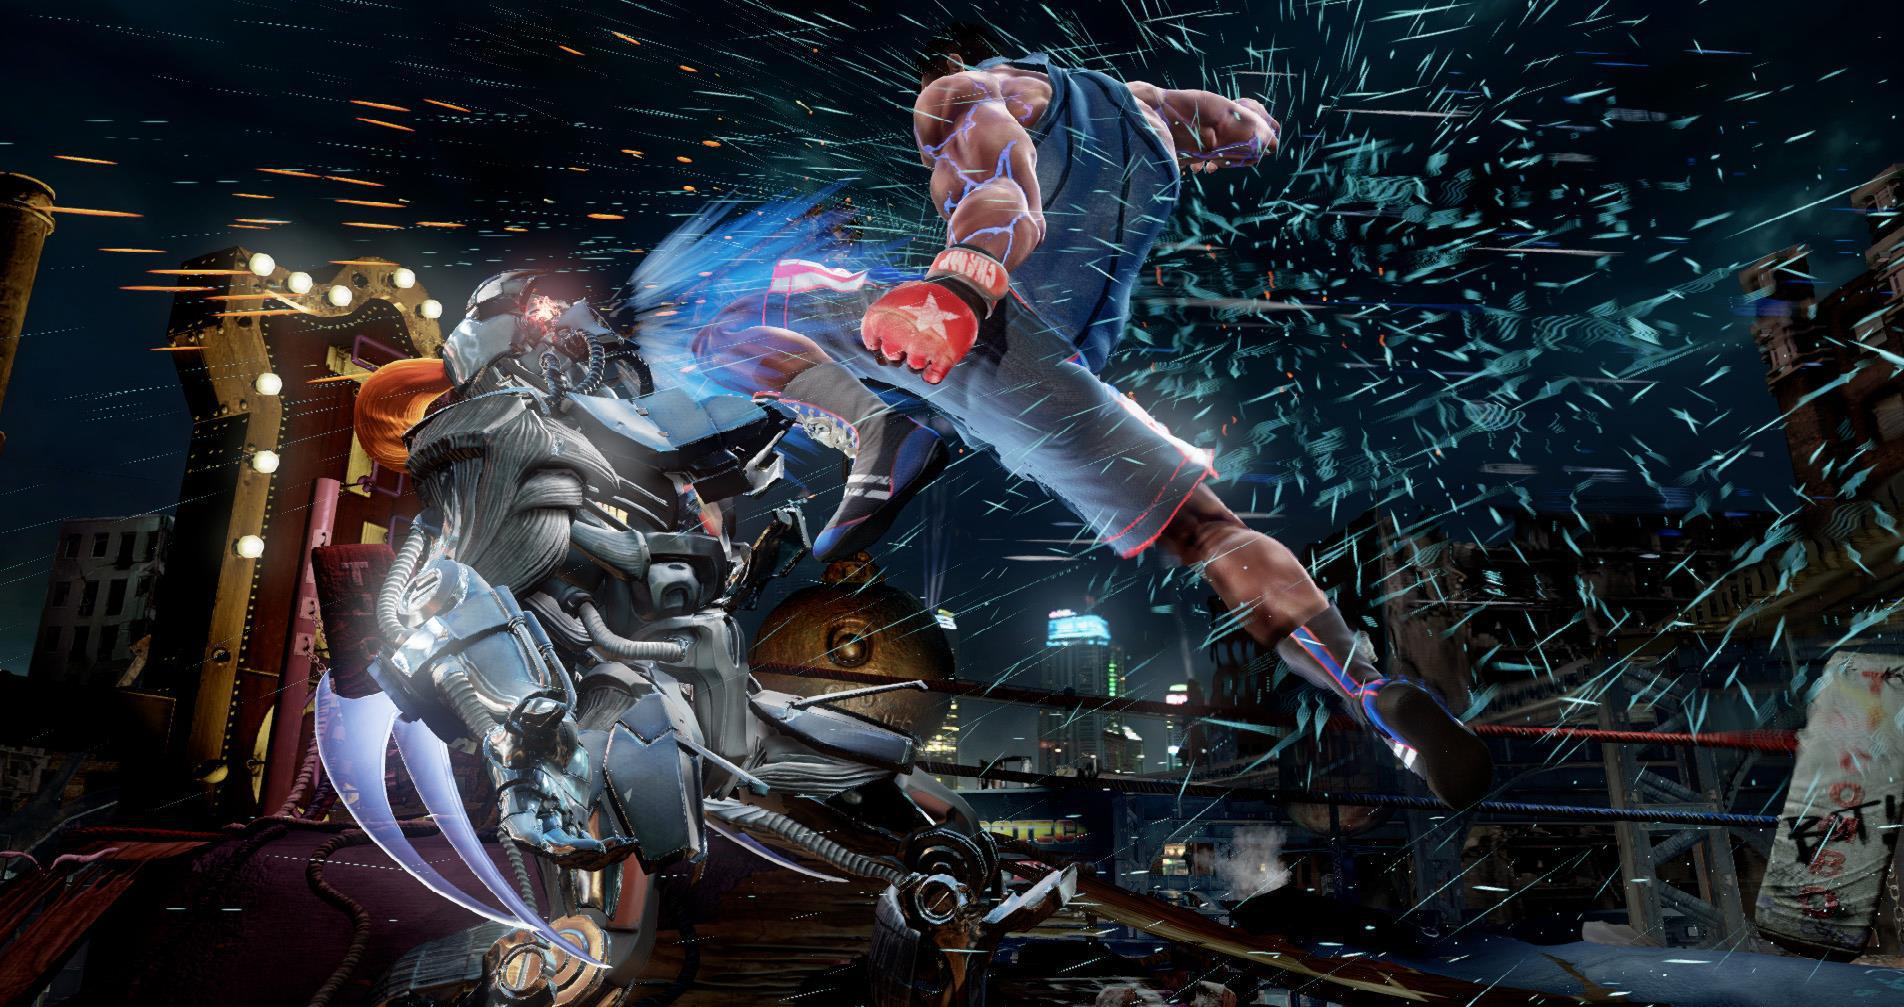 Get to know Killer Instinct's TJ Combo